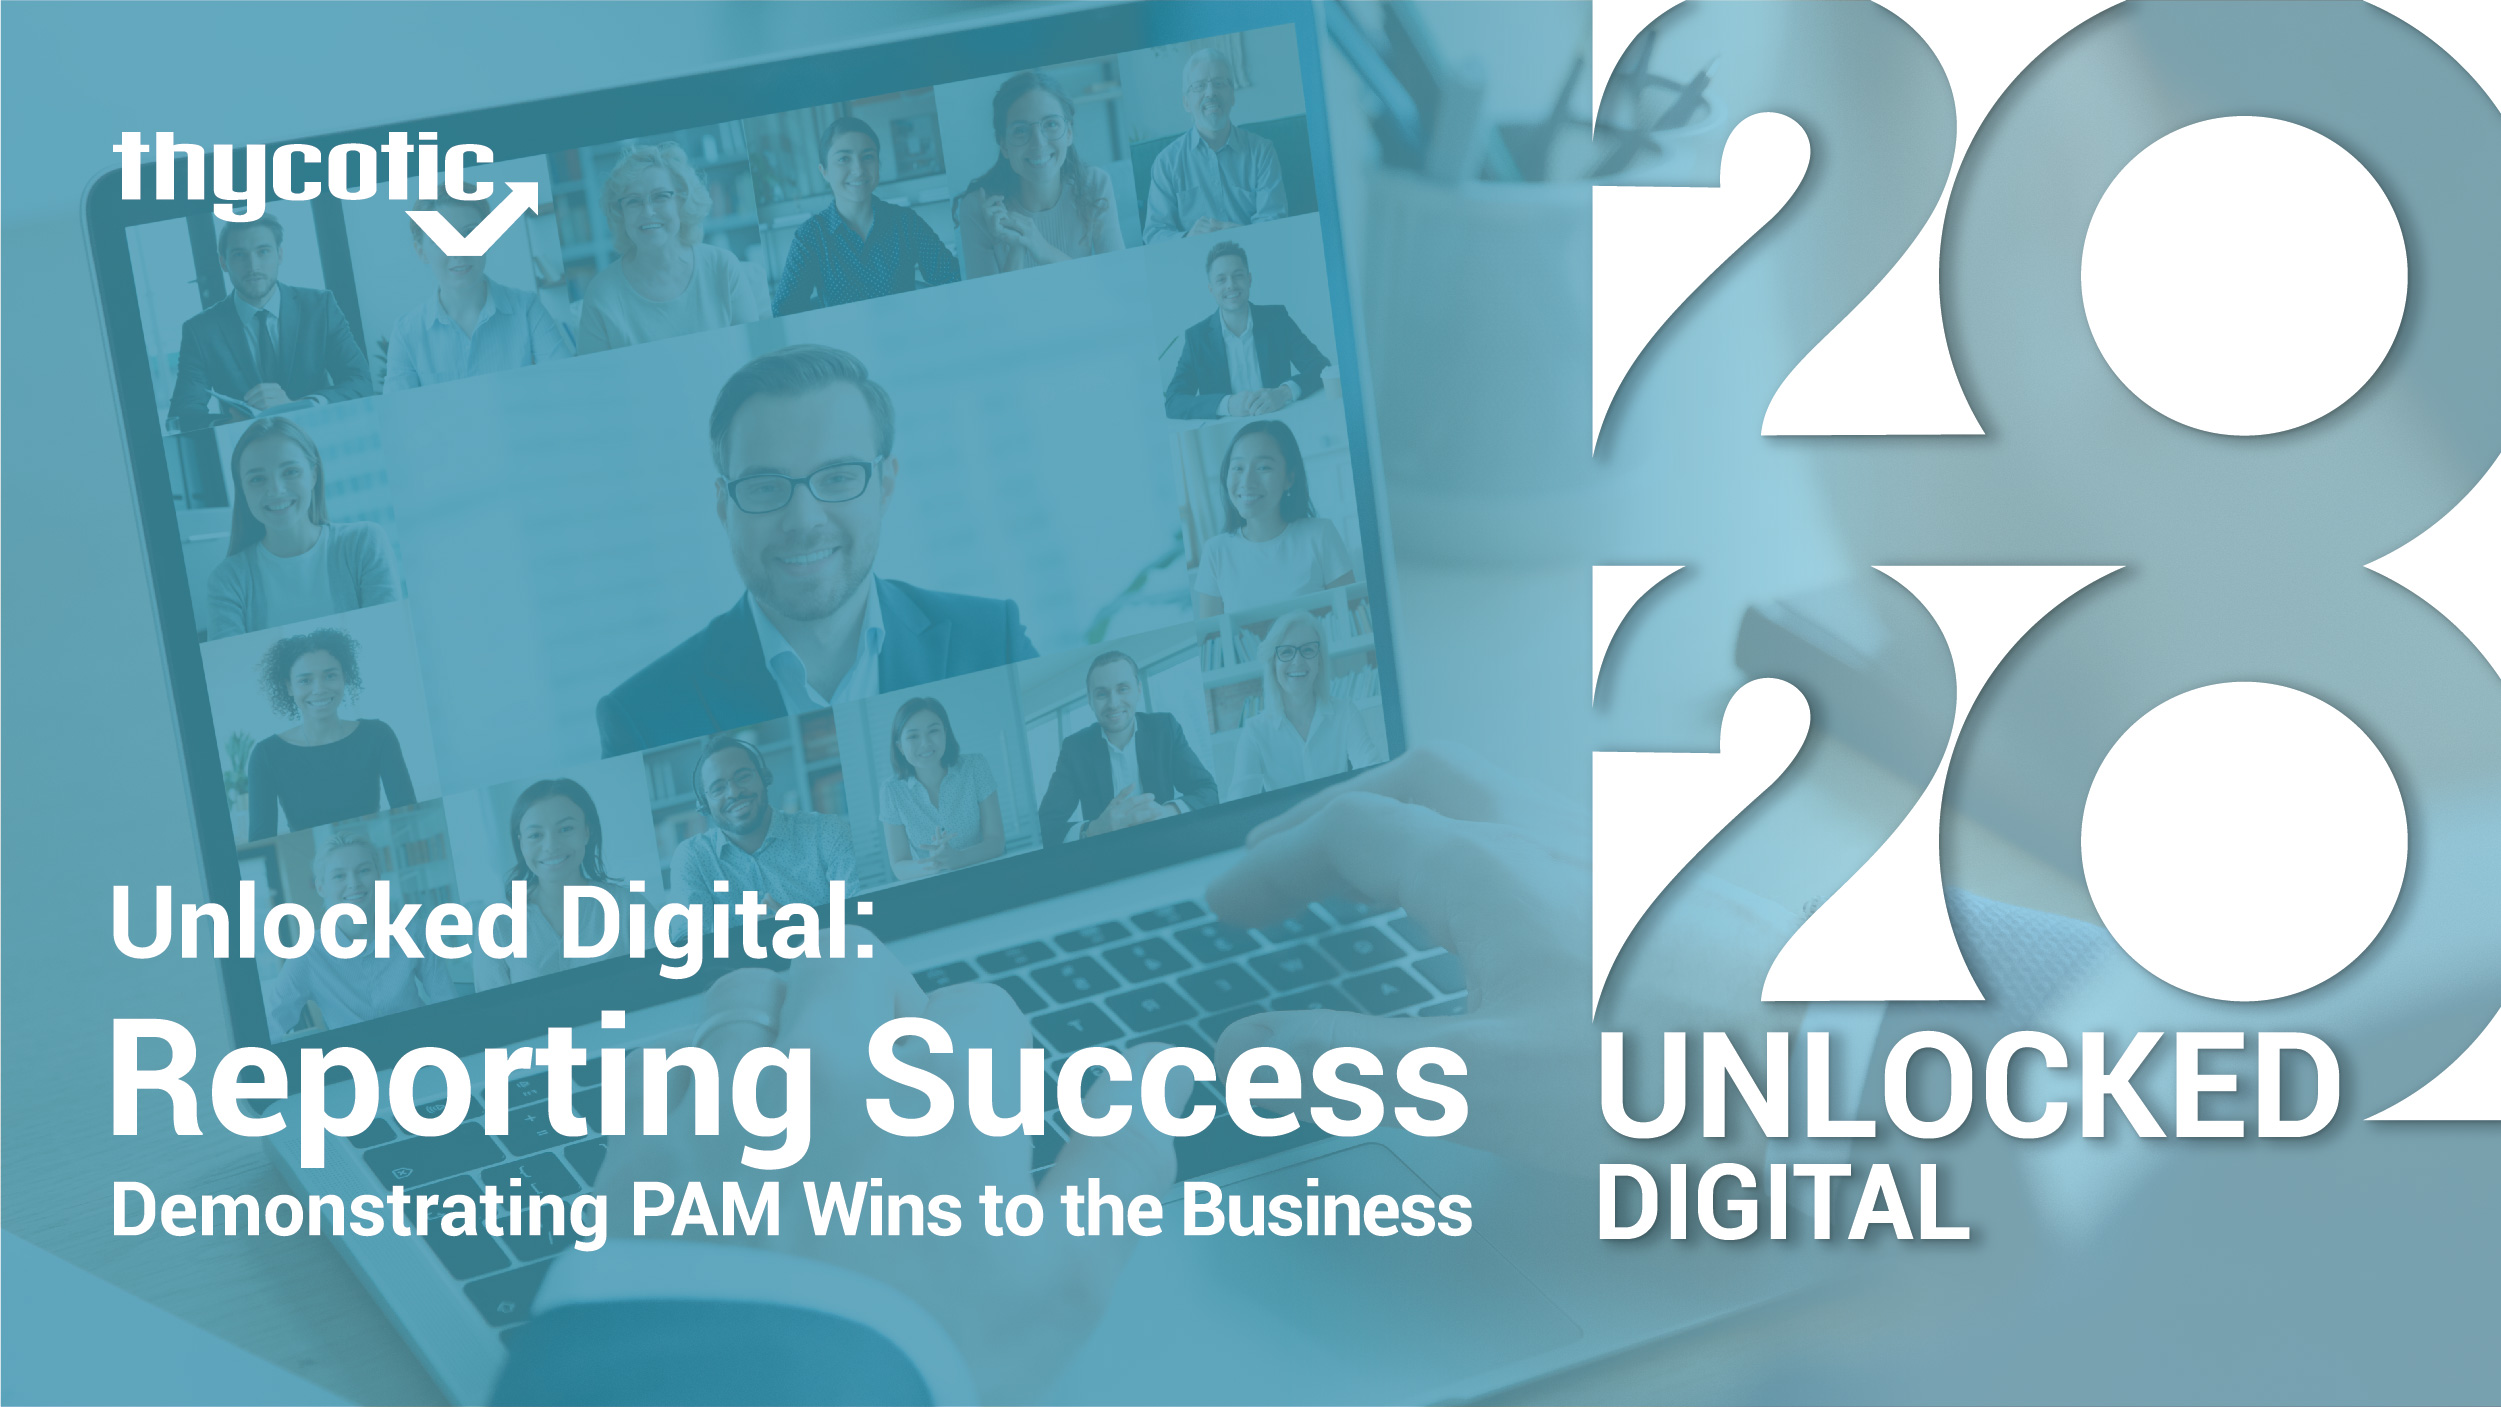 Unlocked Digital: Reporting Success – Demonstrating PAM Wins to the Business